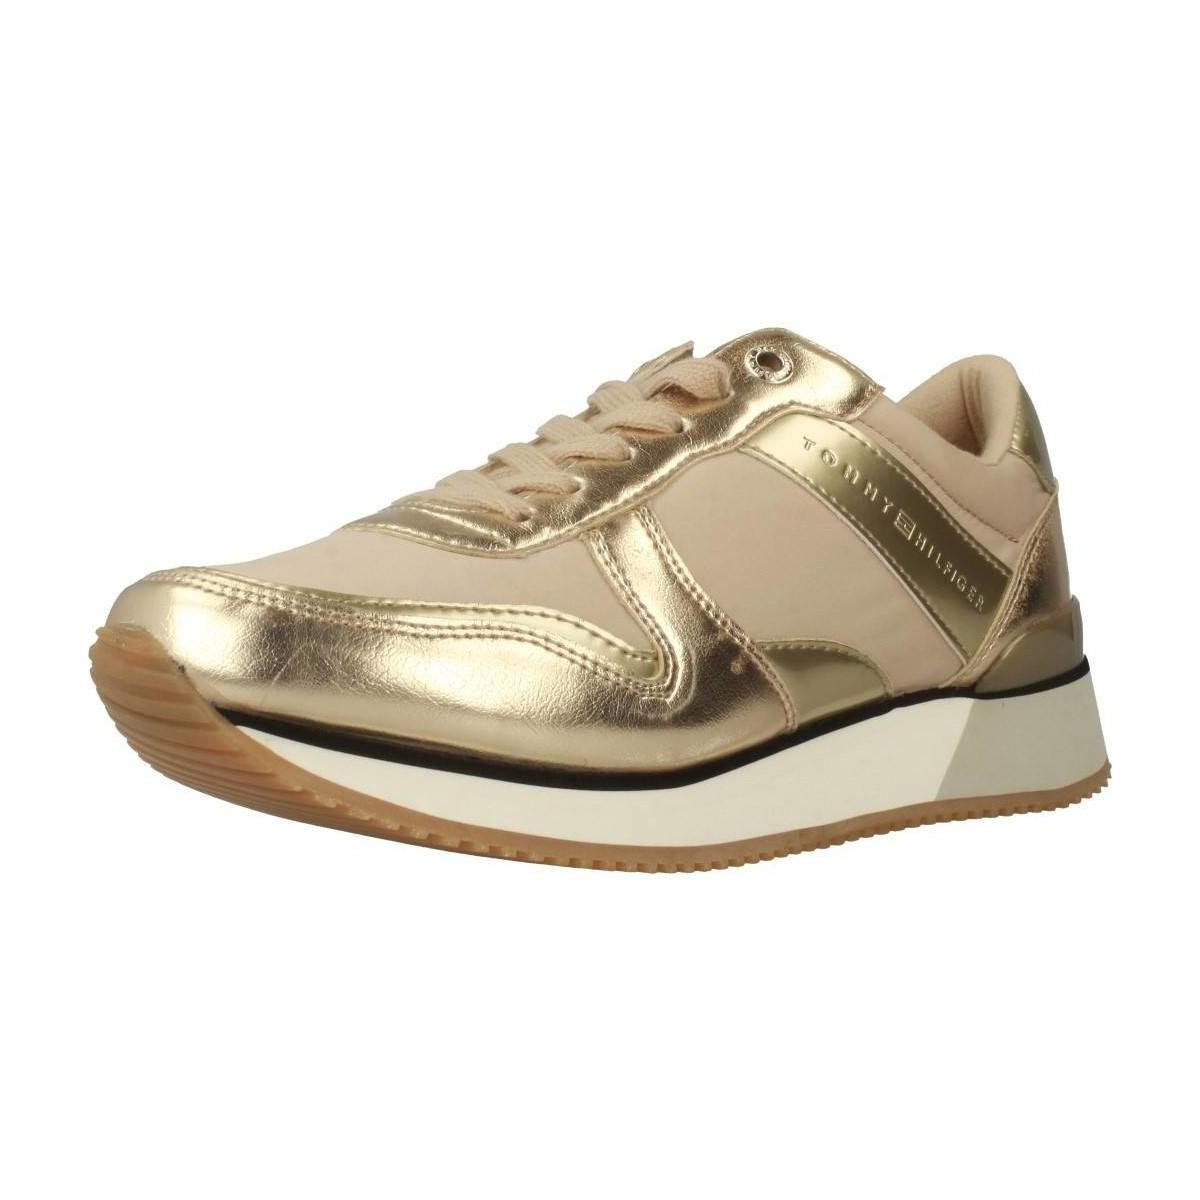 e713d04033 Tommy Hilfiger Fw0fw02683 Women s Shoes (trainers) In Gold in ...